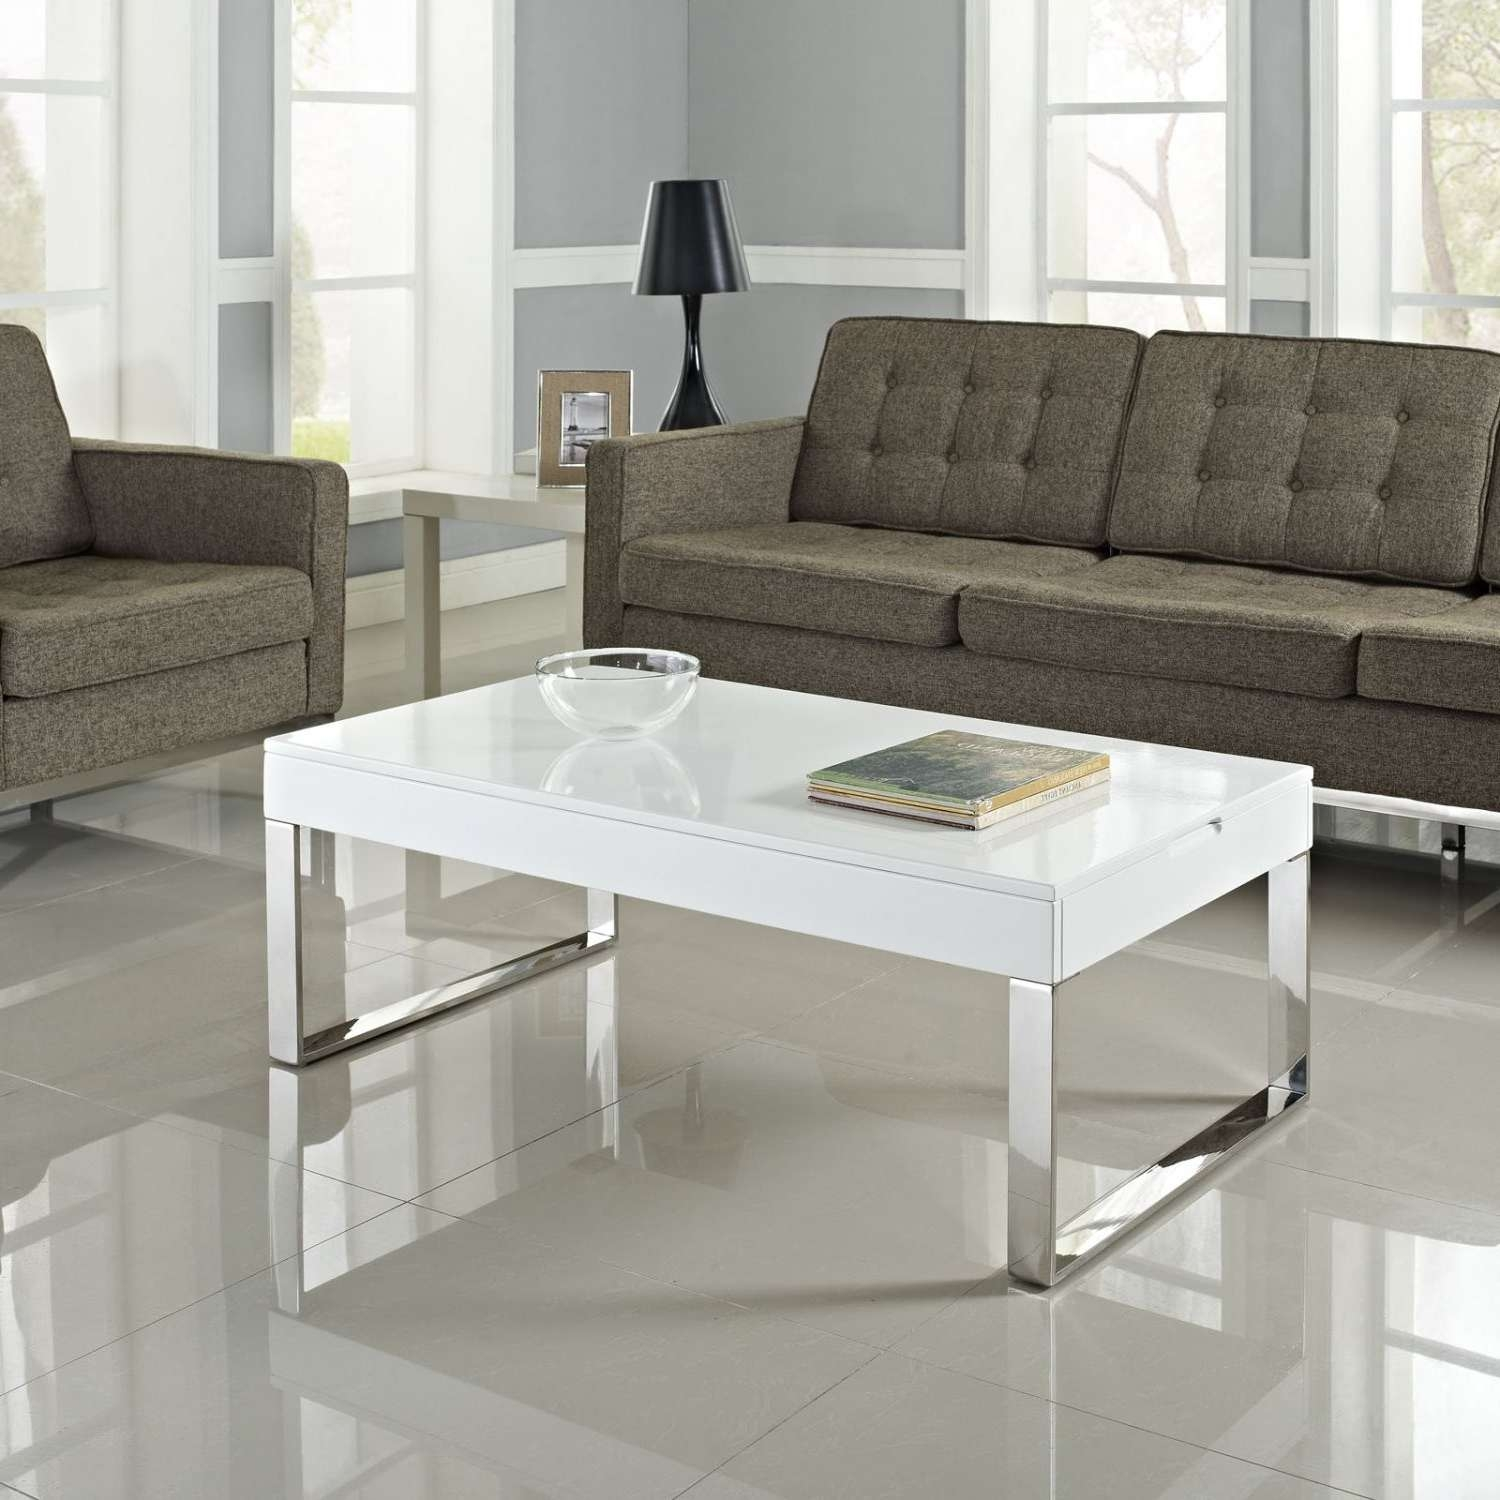 Widely Used High Gloss Coffee Tables Inside White Gloss Lift Coffee Table – All Furniture Usa (View 20 of 20)